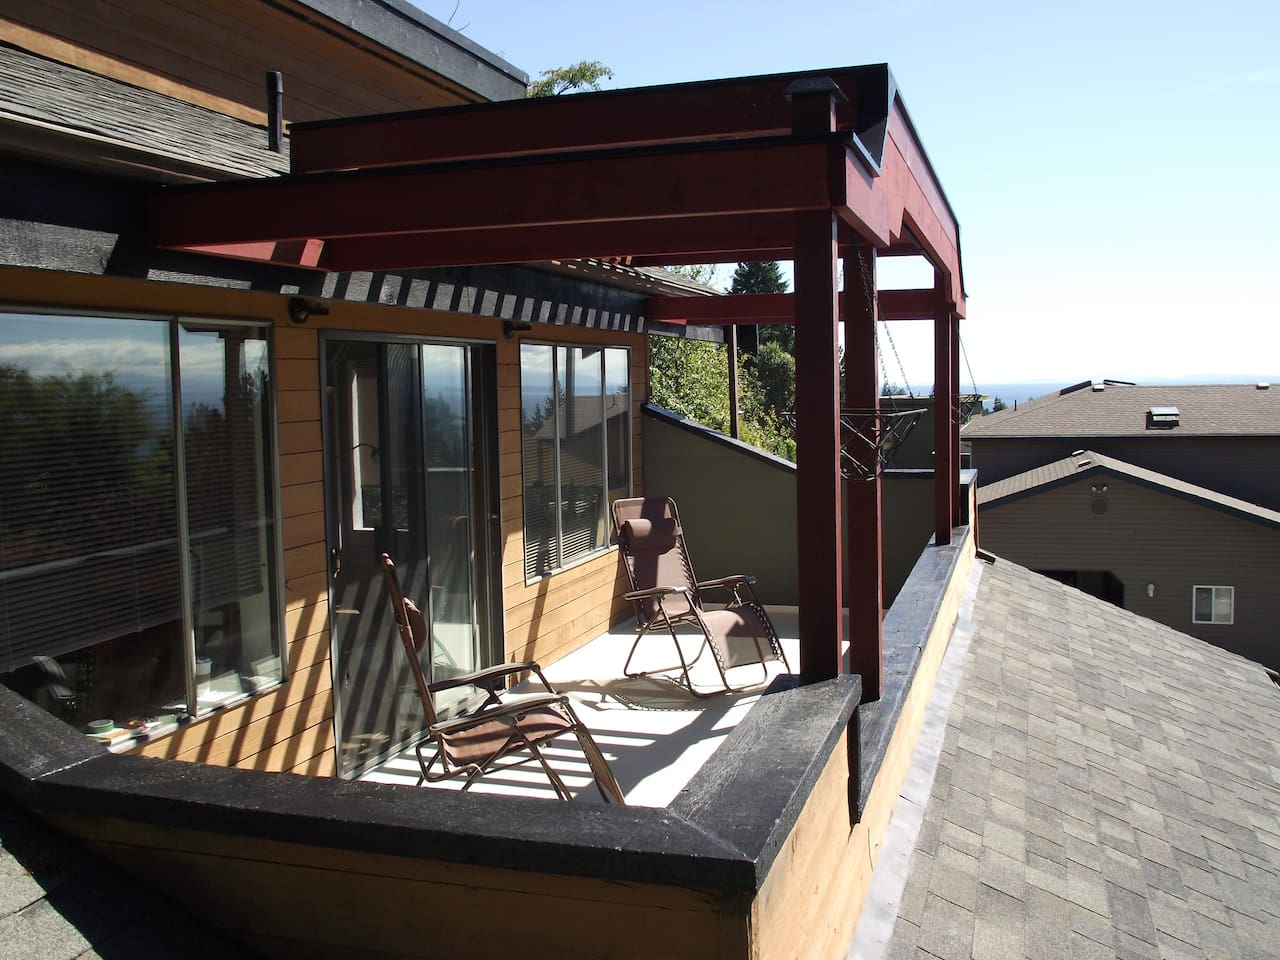 The upstairs deck for the suite.